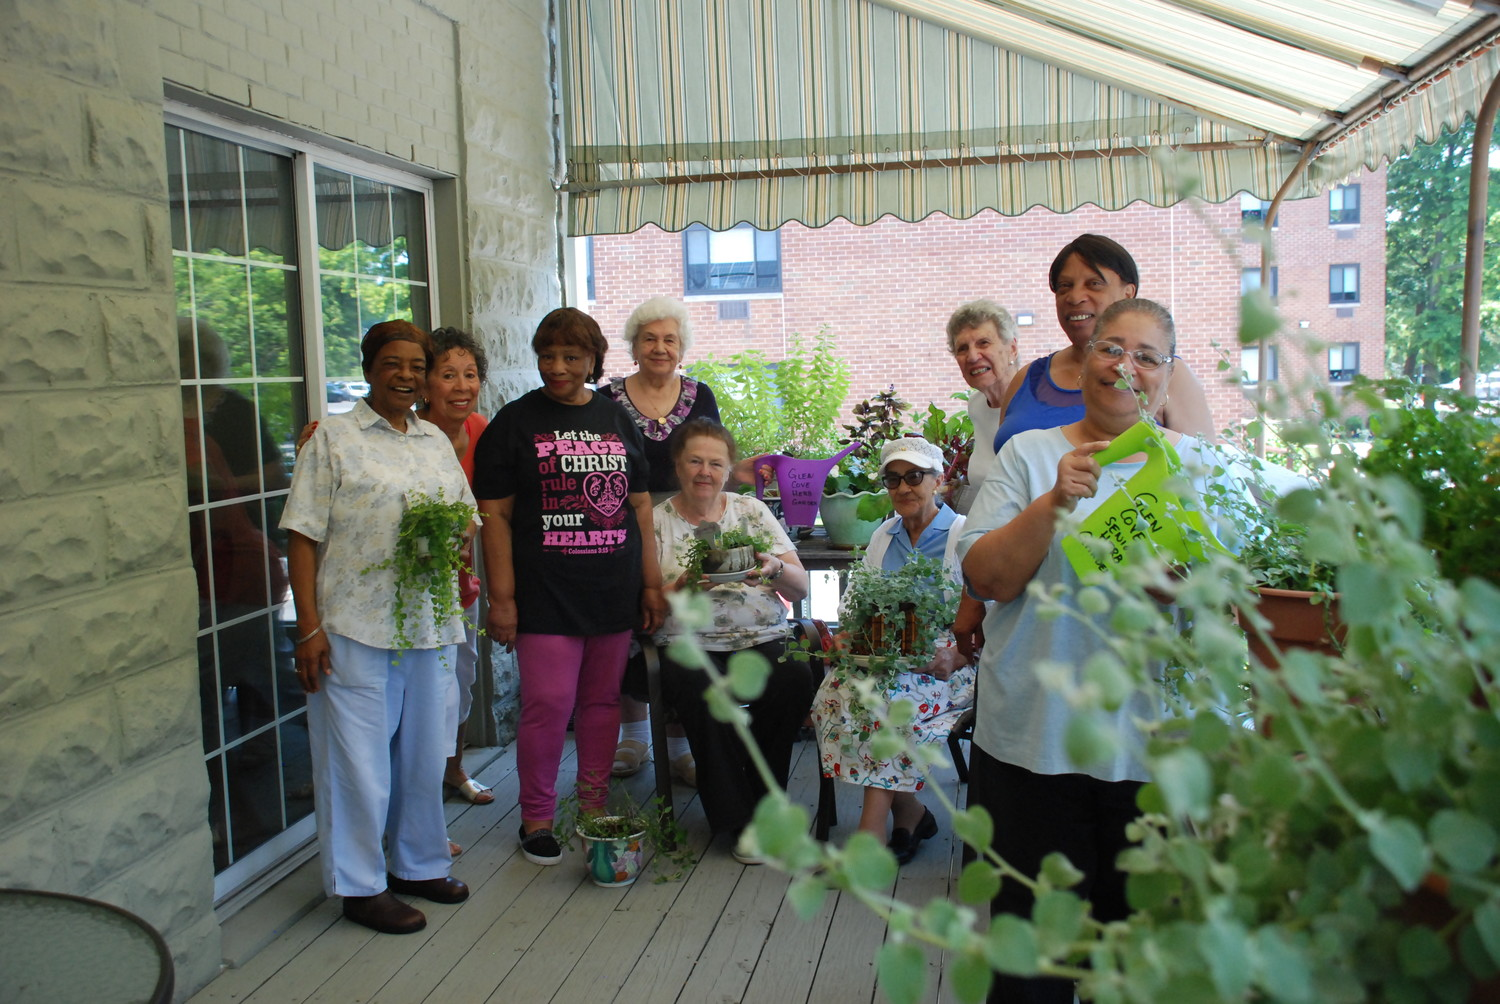 The Garden Committee at the Glen Cove Senior Center works hard to maintain the herbs and fragrant flowers on the center's back porch.